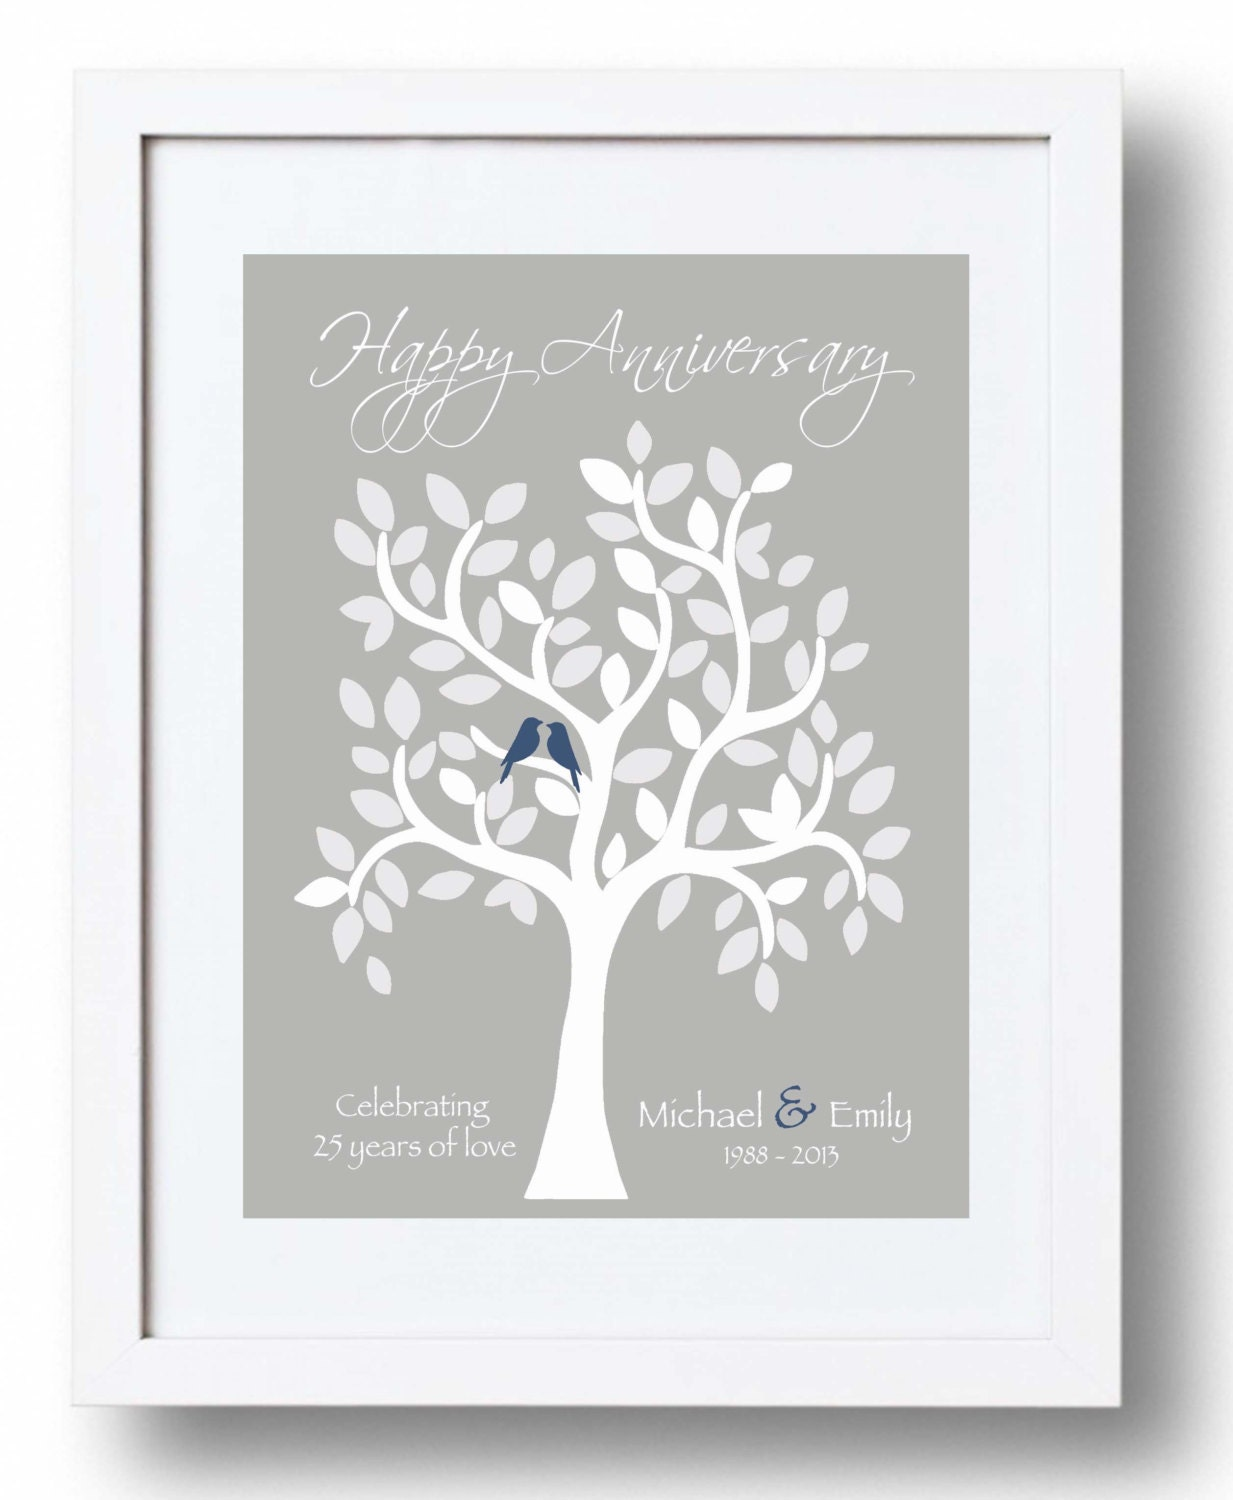 What Is The 25th Wedding Anniversary Gift: 25th Anniversary Gift For Parents 25th Silver Anniversary